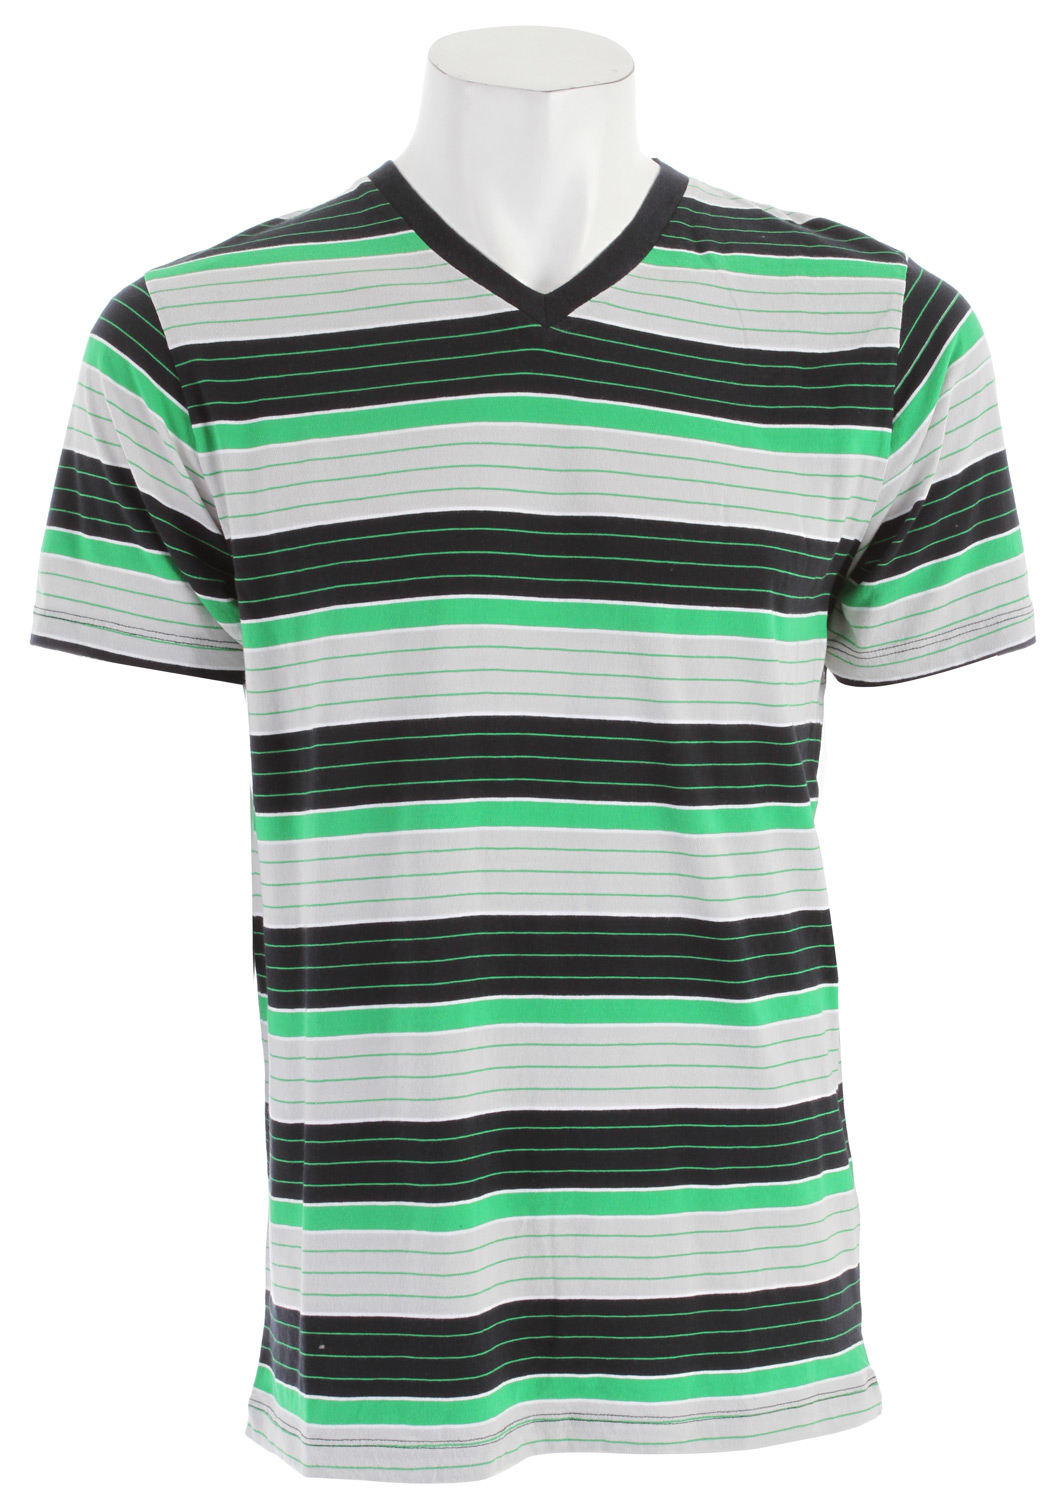 Skateboard Key Features of The Vans Lerok T-Shirt: Regular Fit Crew Neck Short Sleeve 100% Cotton jersey yarn dye stripe V-Neck shirt Contrast hazard stripe taping inside neck Vans clamp label on back bottom hem Garment wash with softeners - $26.95